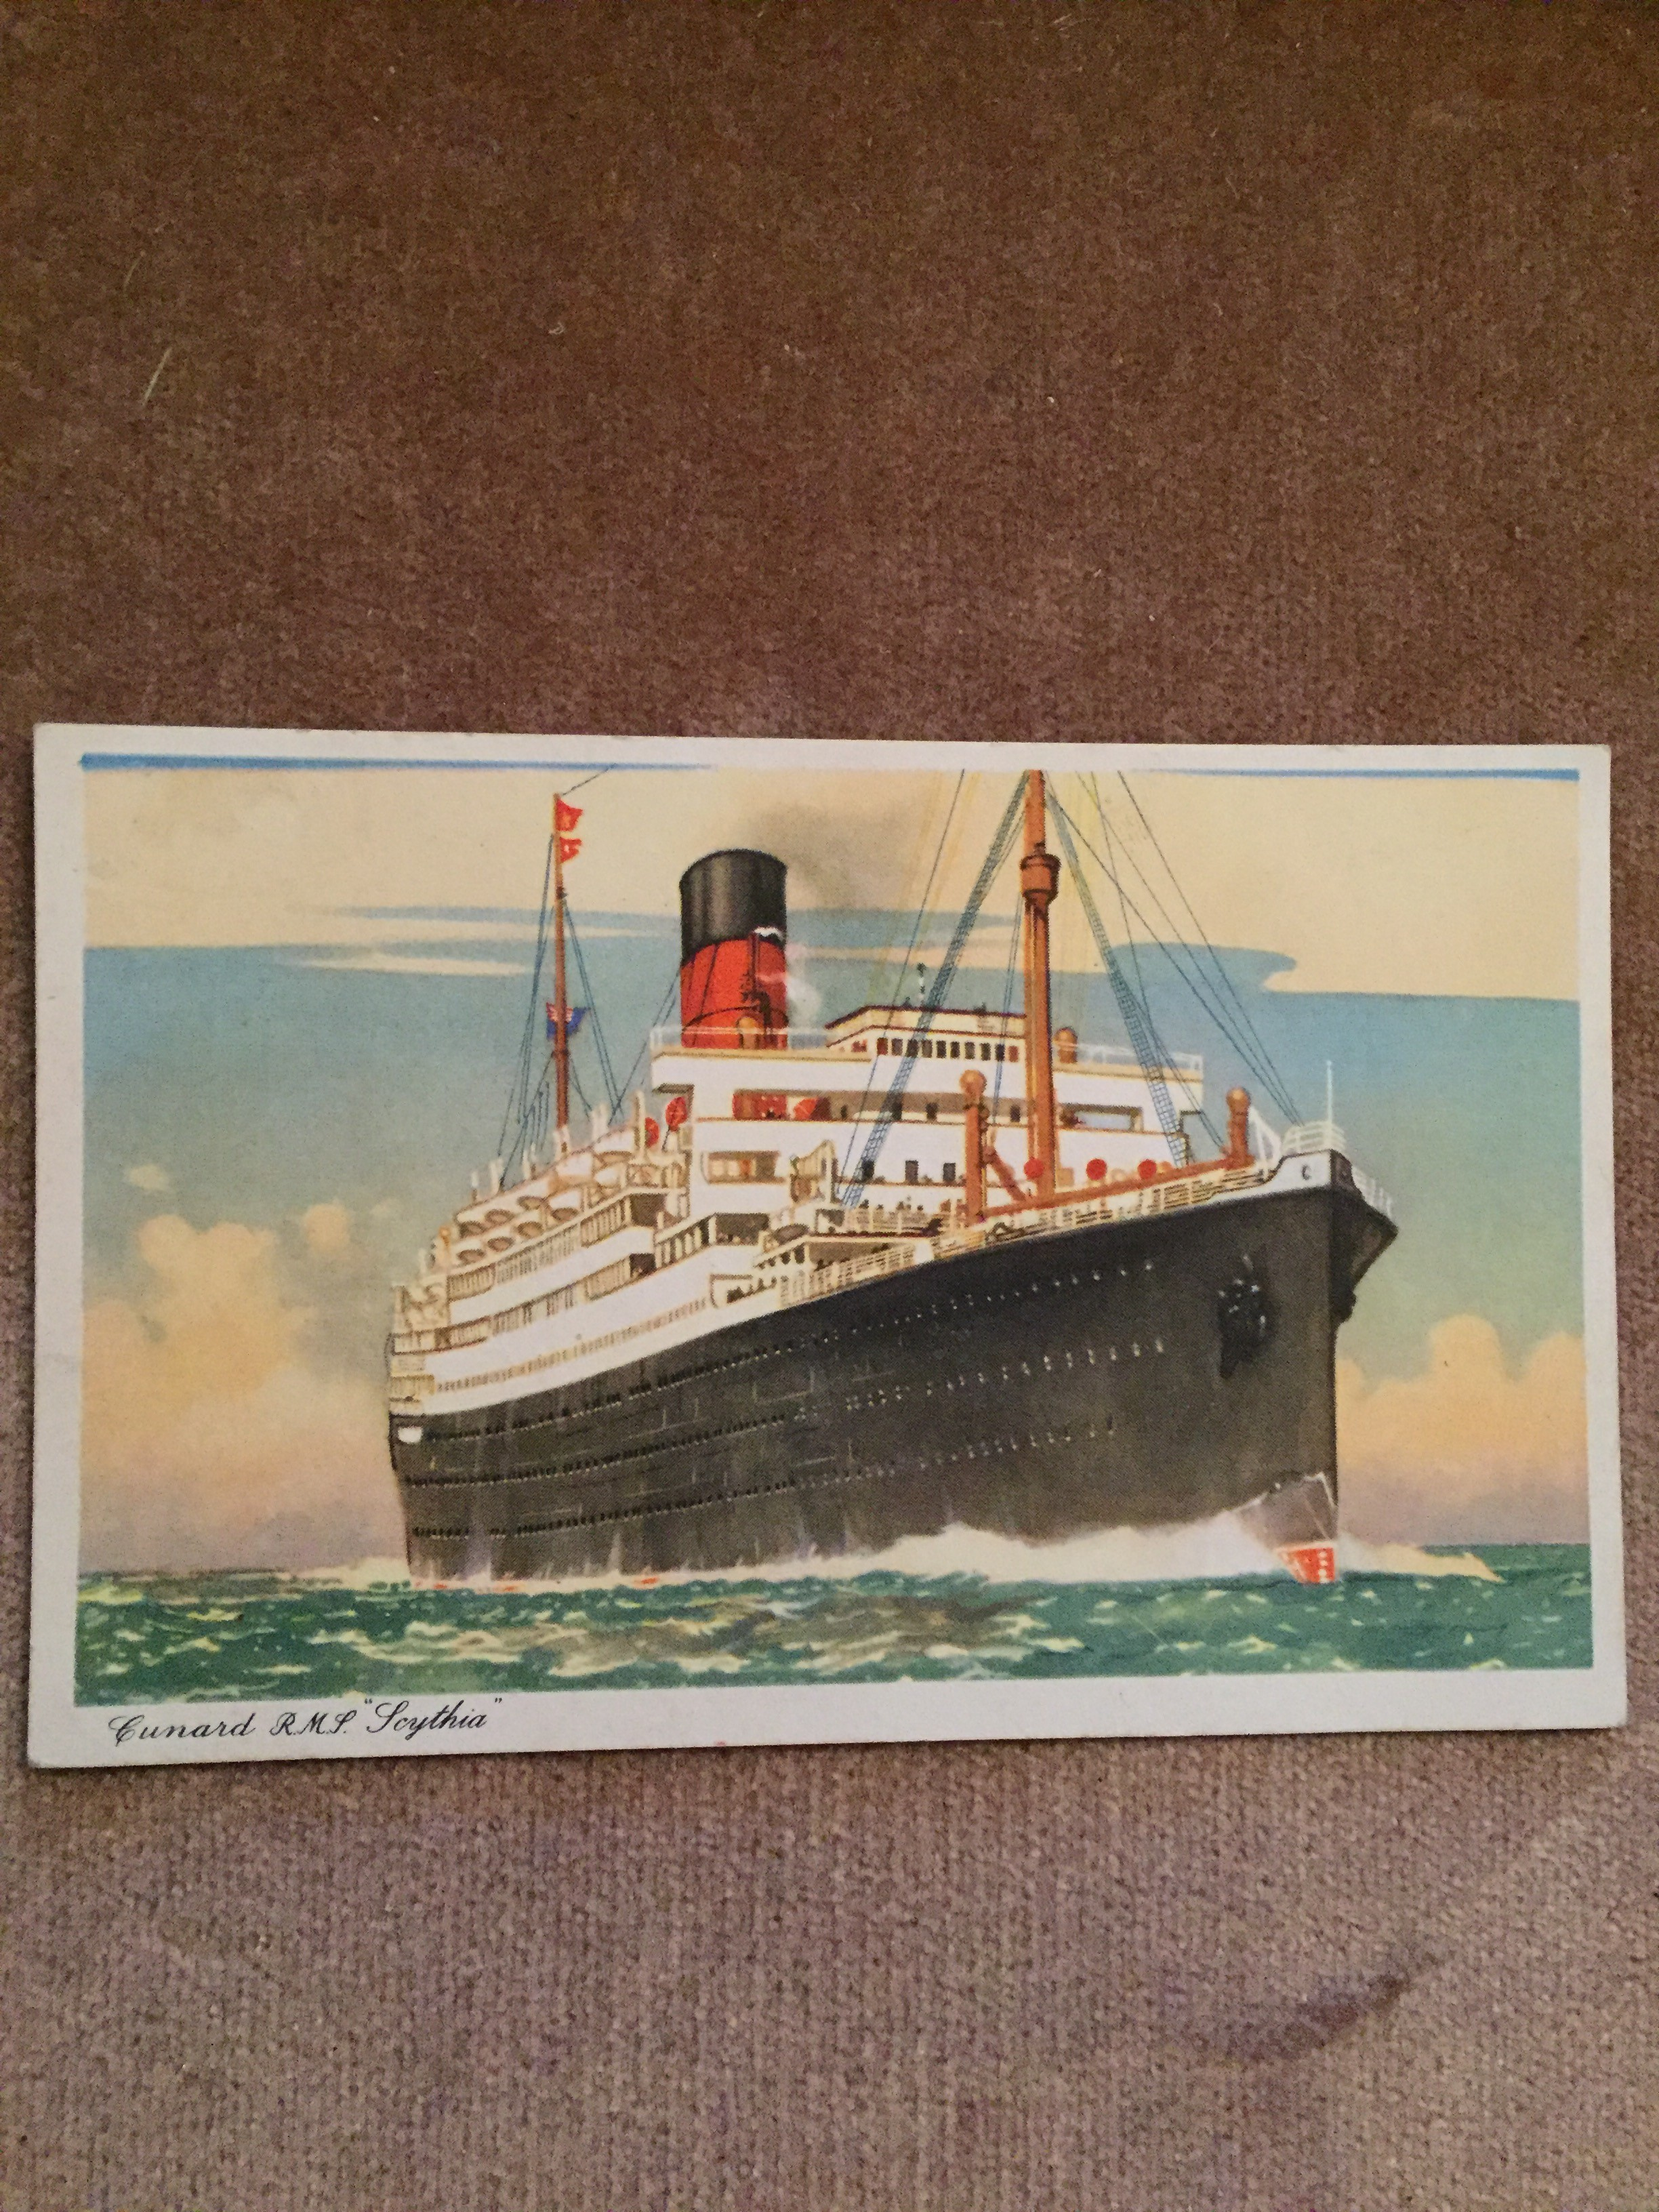 USED COLOUR POSTCARD FROM THE OLD CUNARD LINE VESSEL THE RMS SCYTHIA